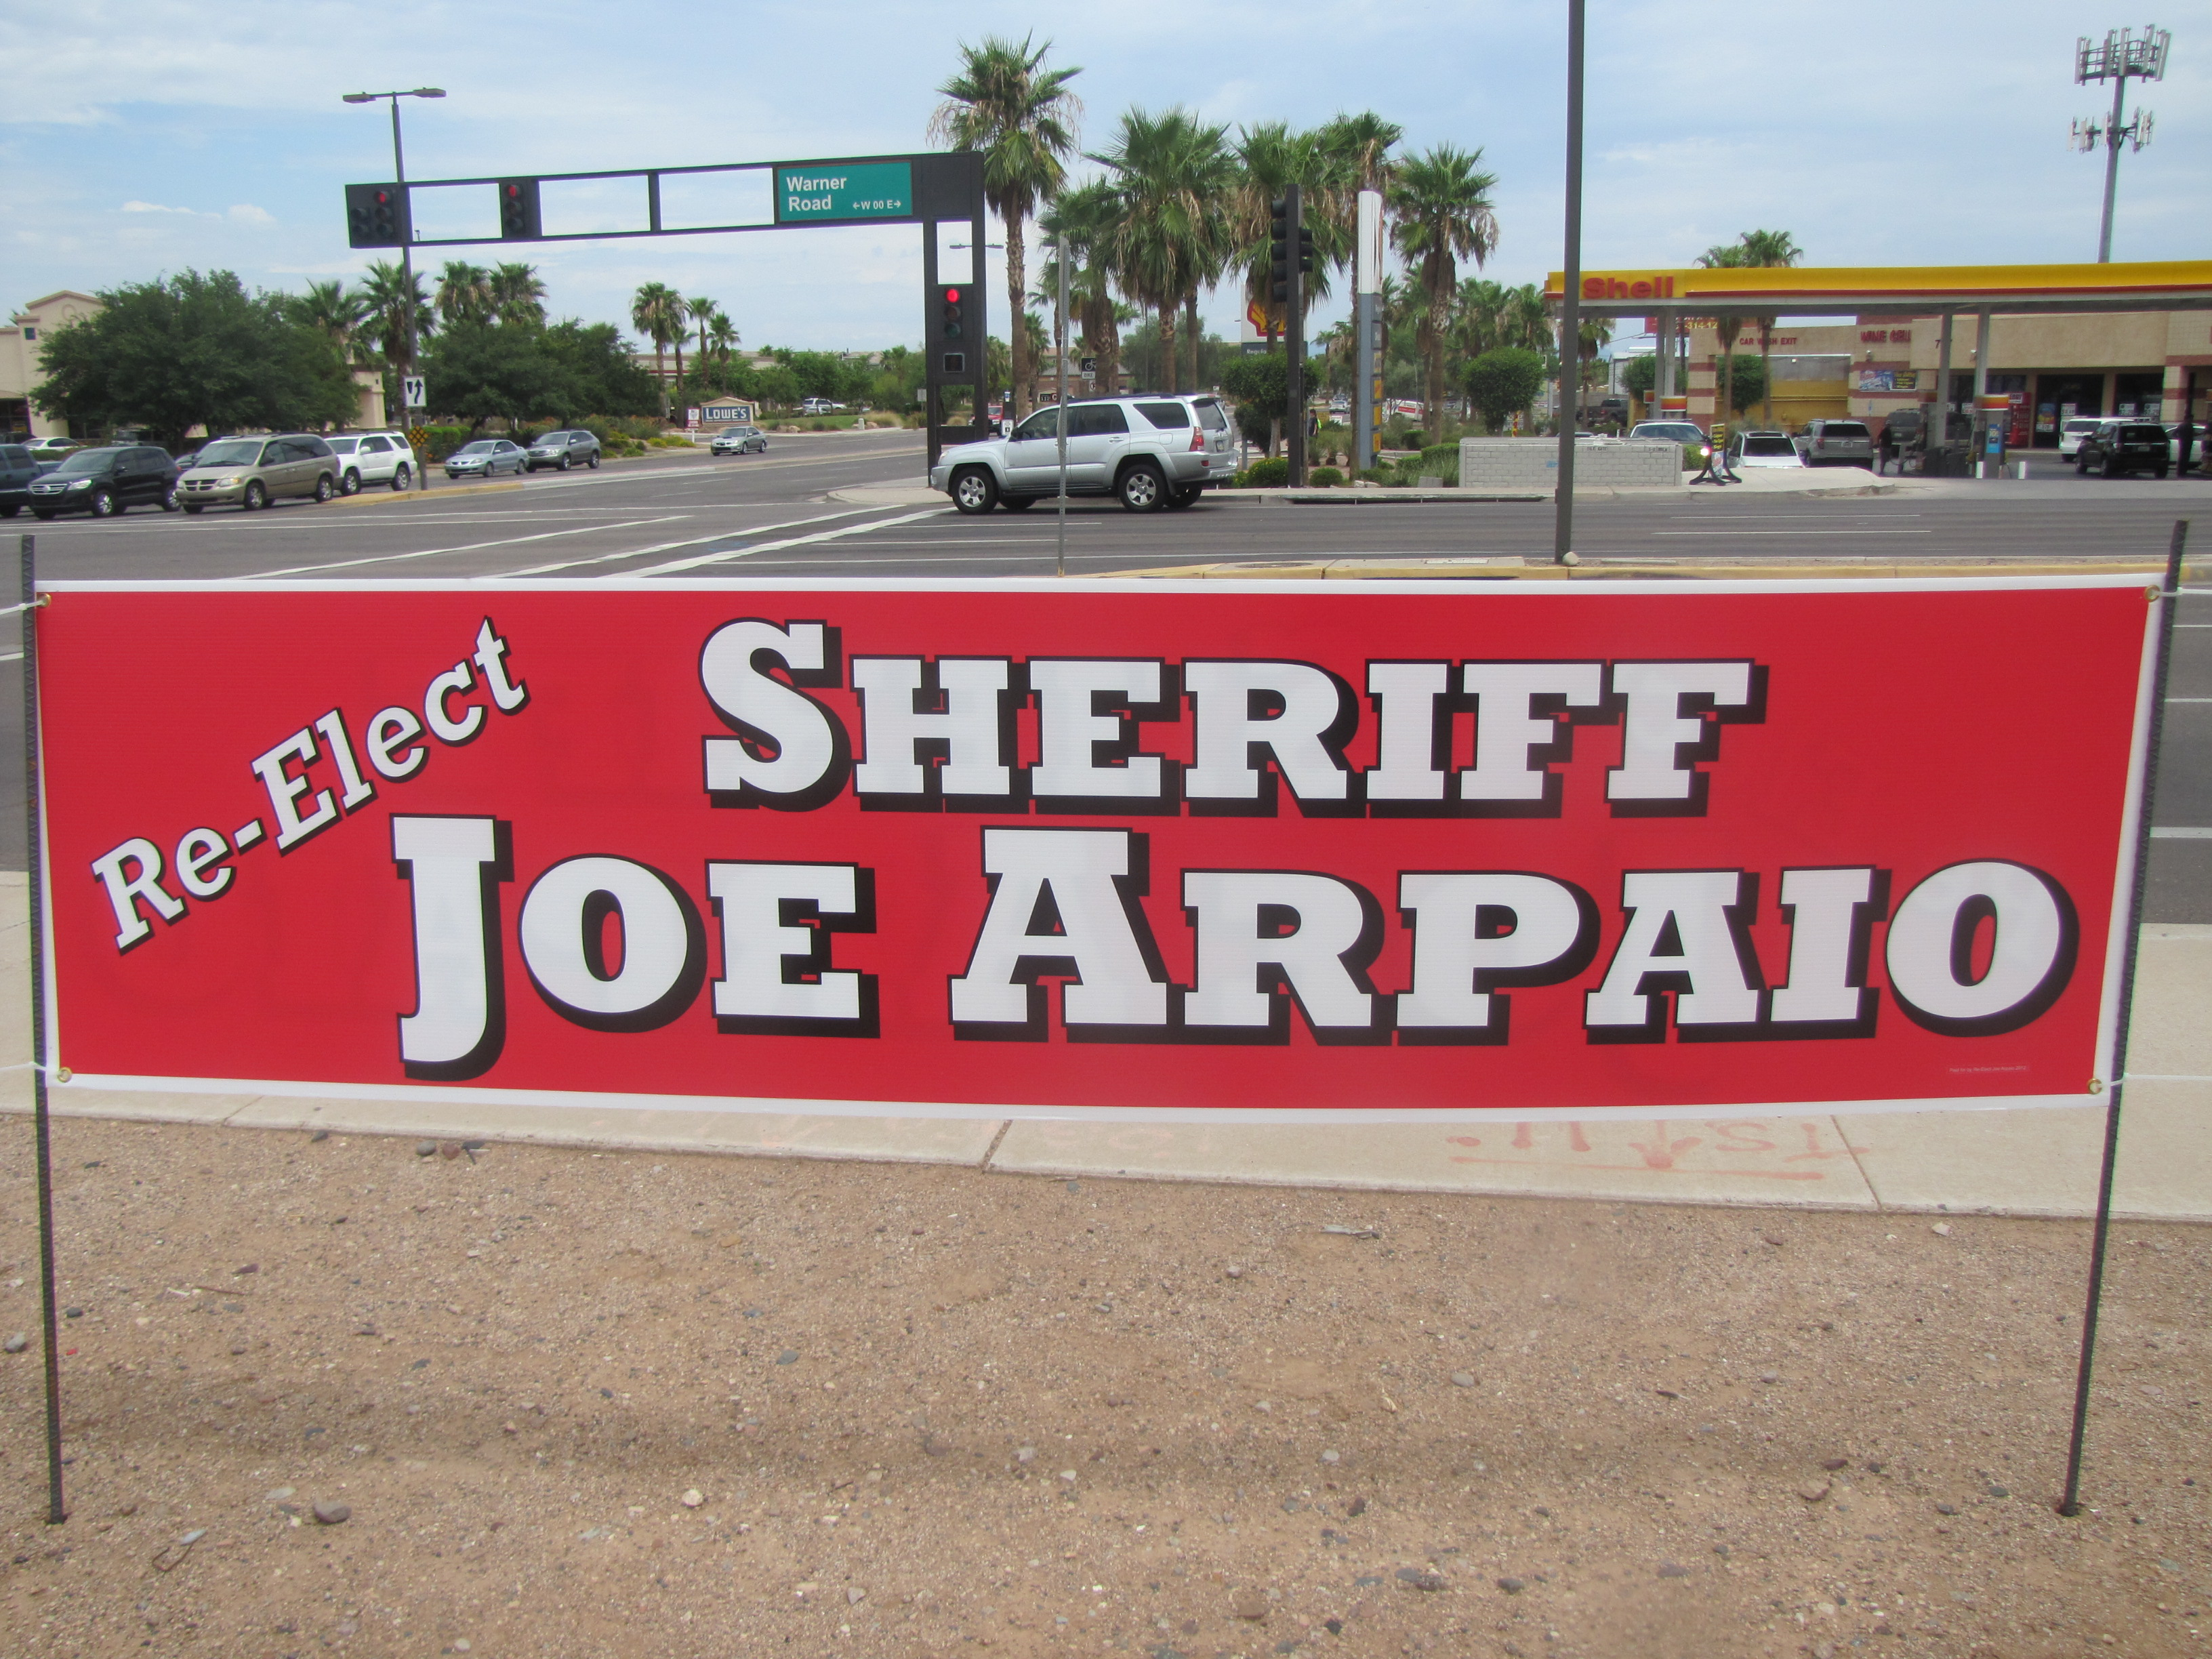 Joe Arpaio election sign